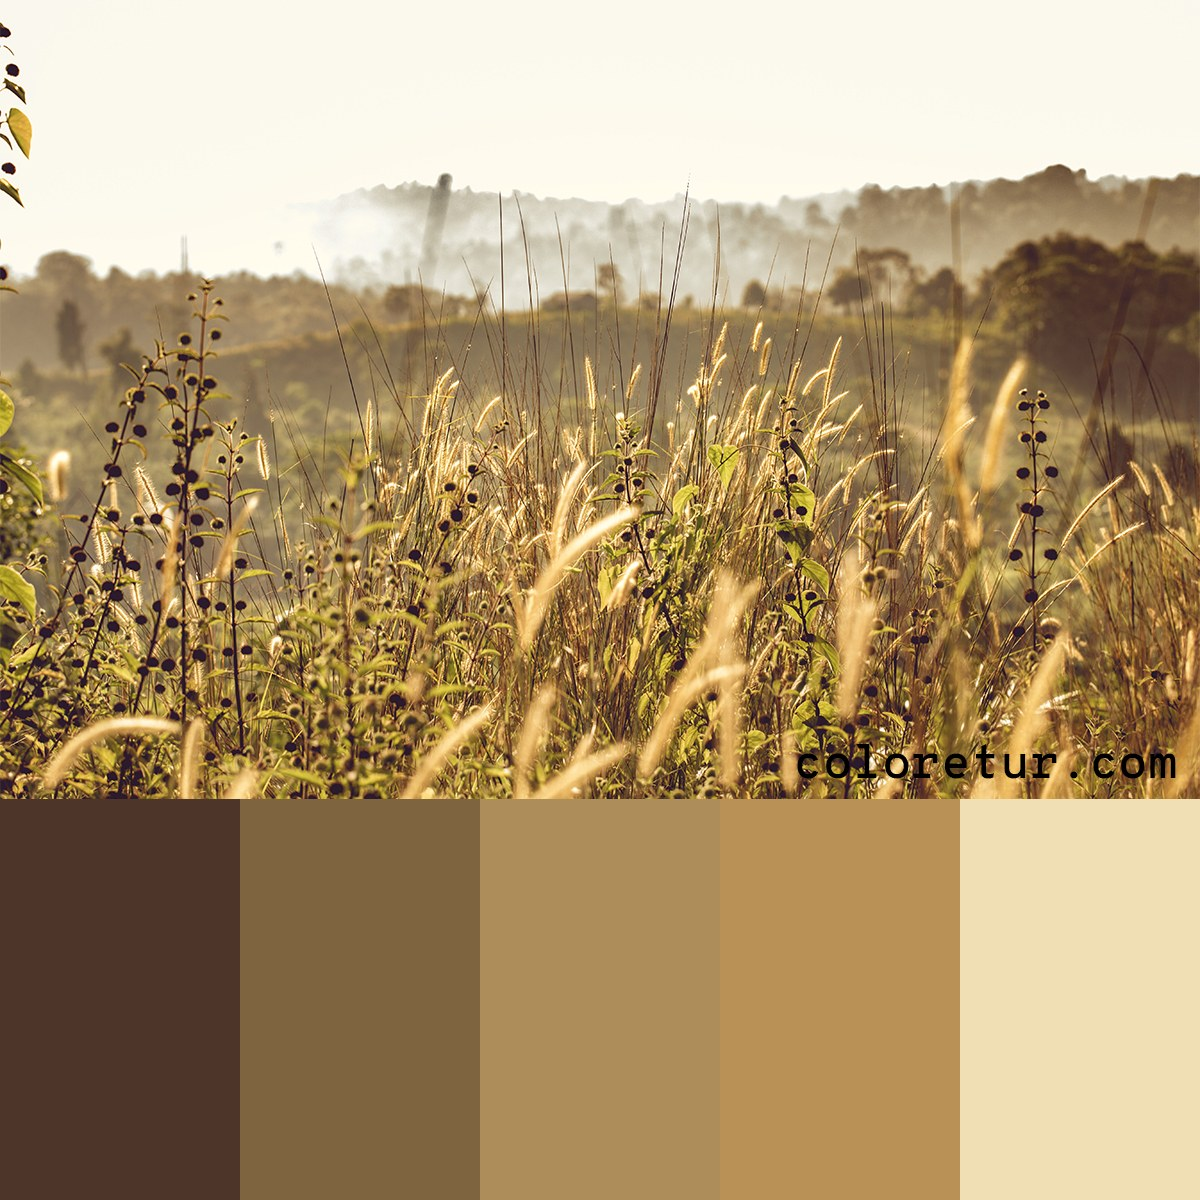 A warm, rich palette with earthy tones from dry grass fields.